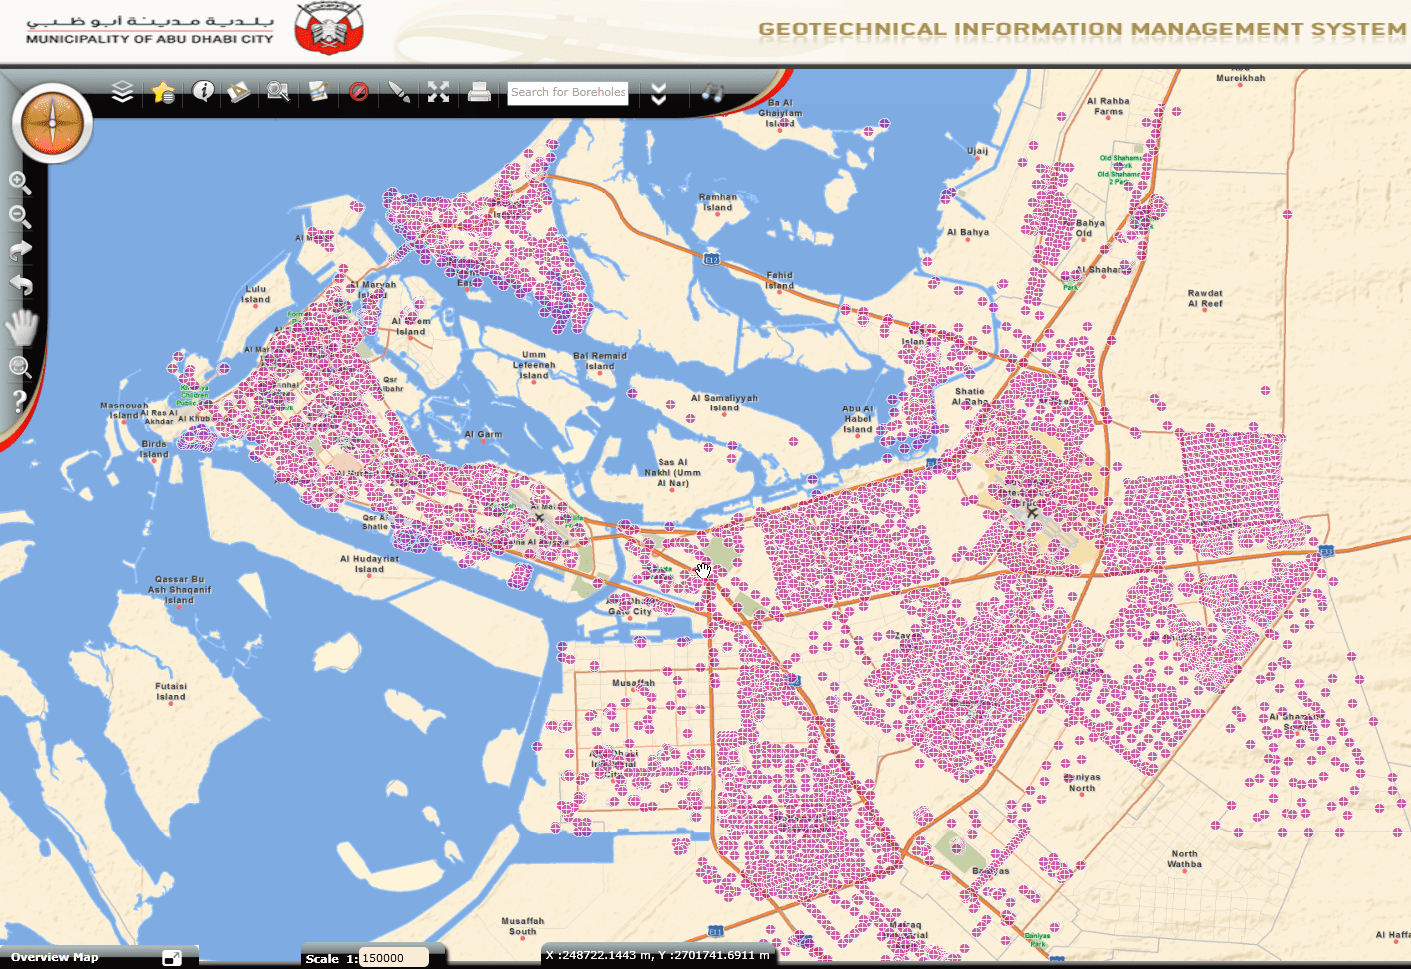 The Geotechnical Information Management System (GIMS) provides easy access to data for all boreholes around Abu Dhabi.